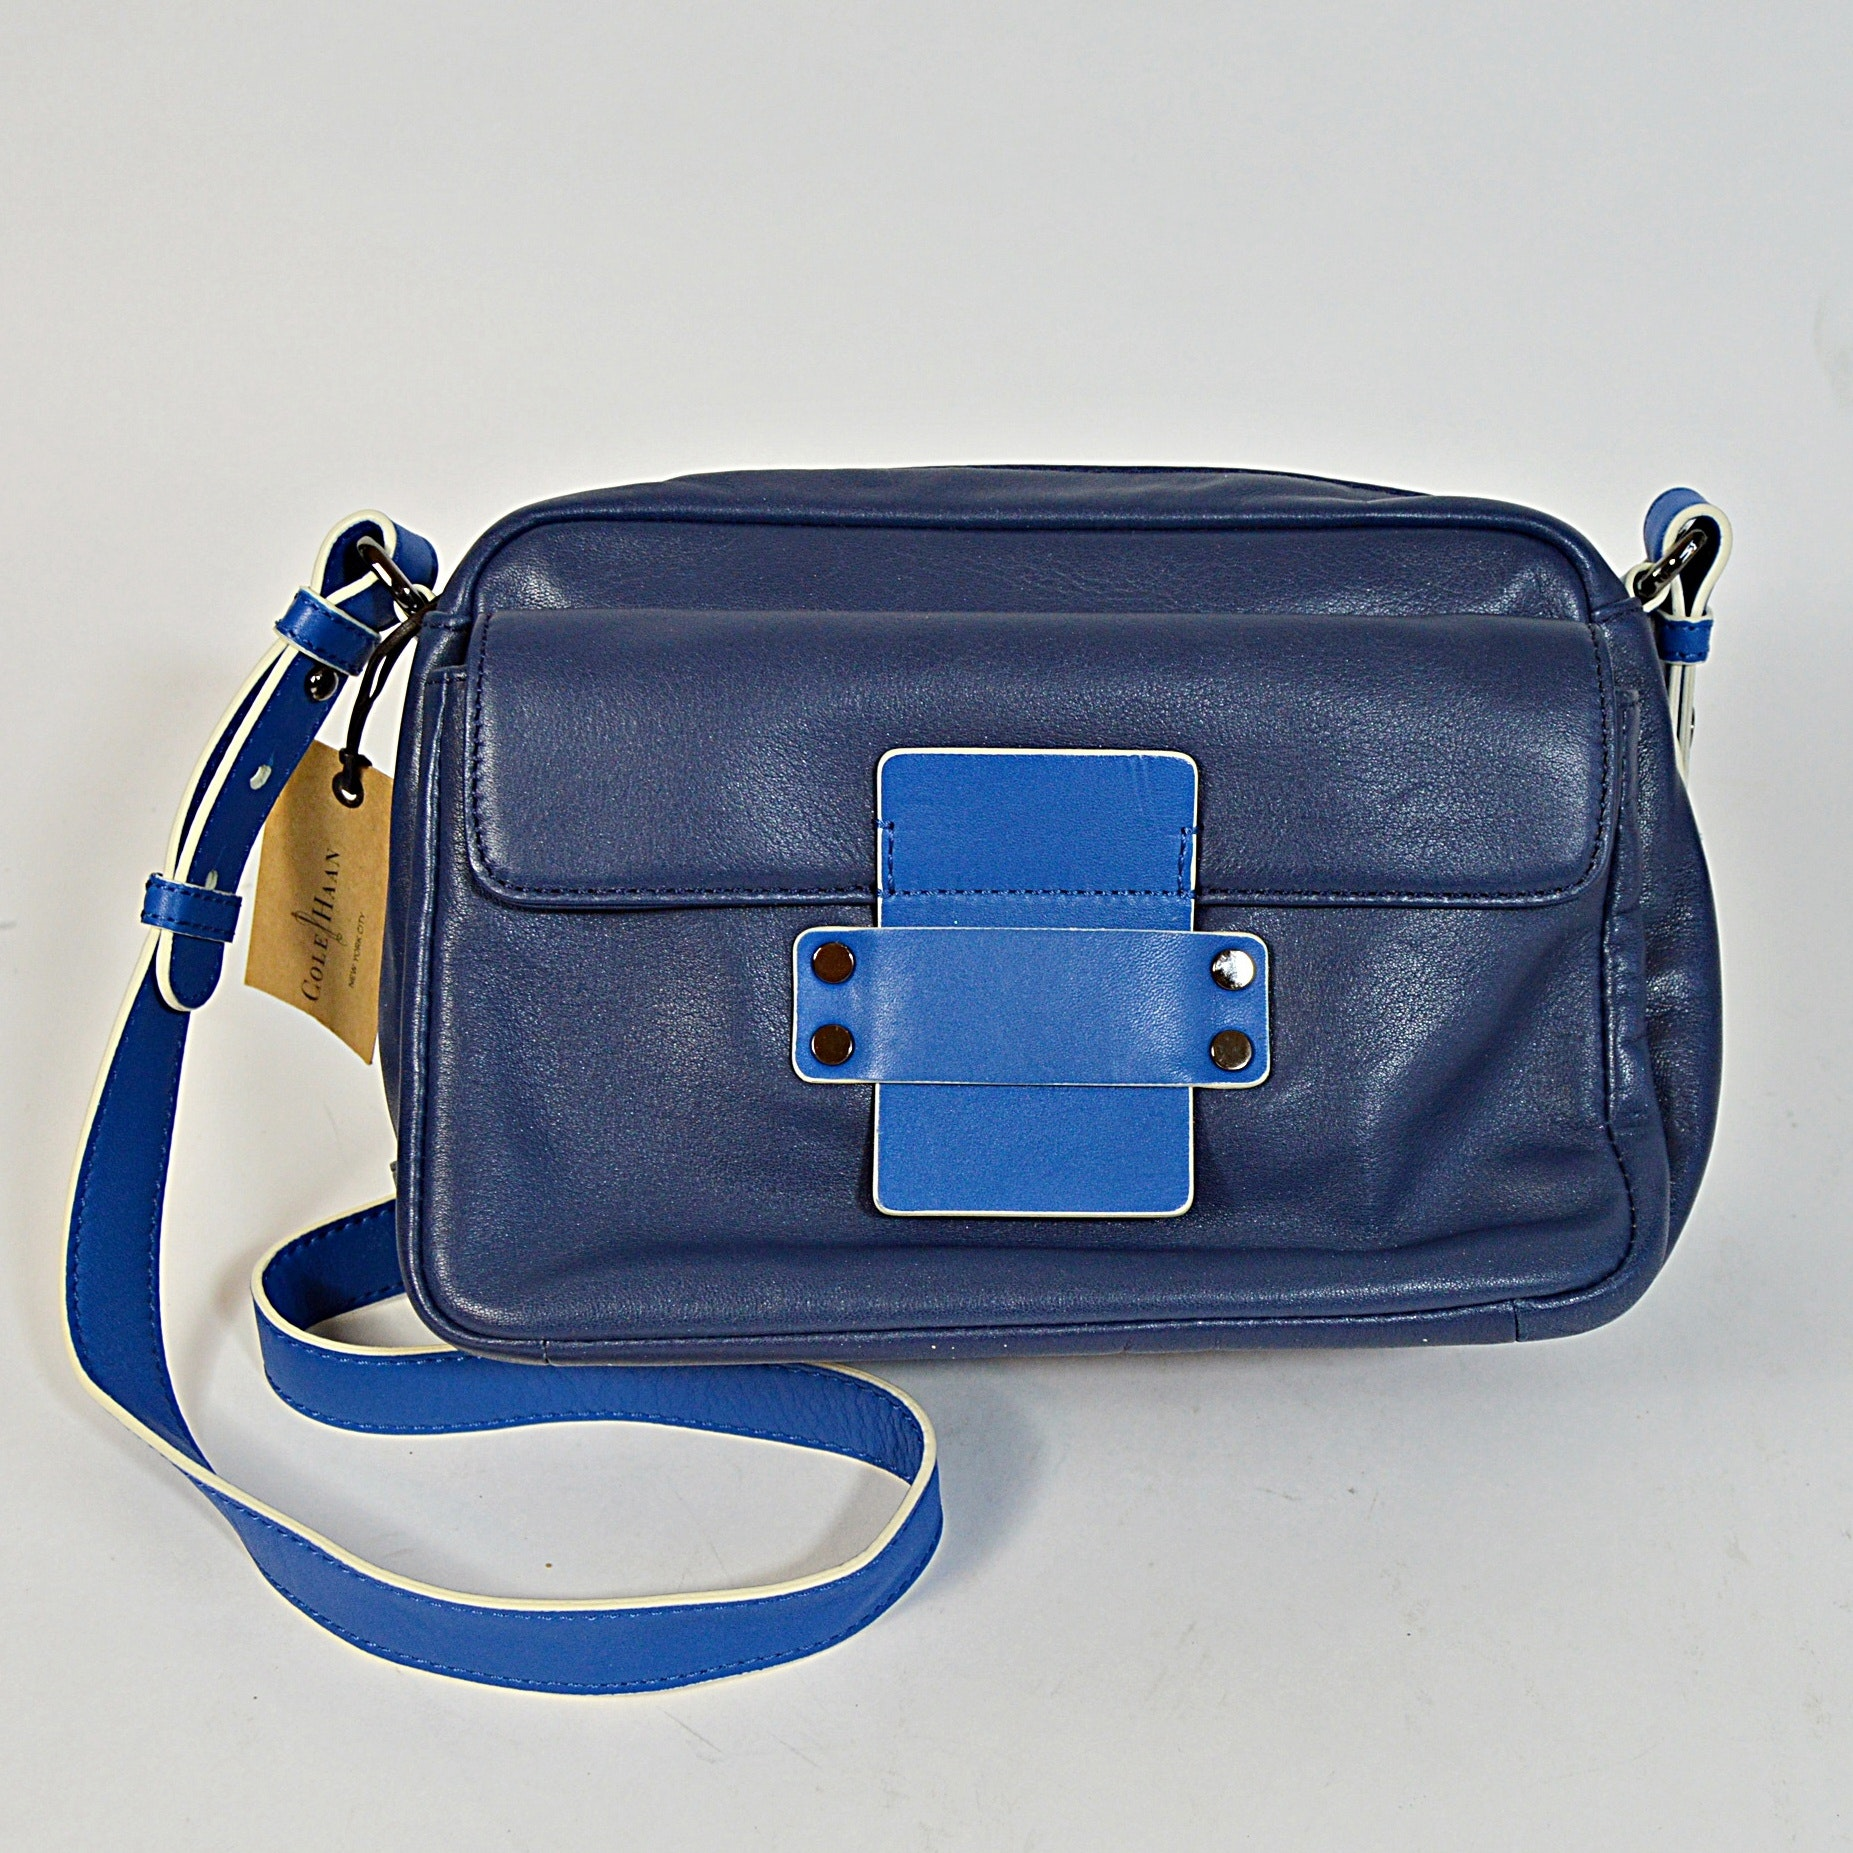 Cole Haan Blue Leather Handbag, New-with-Tags